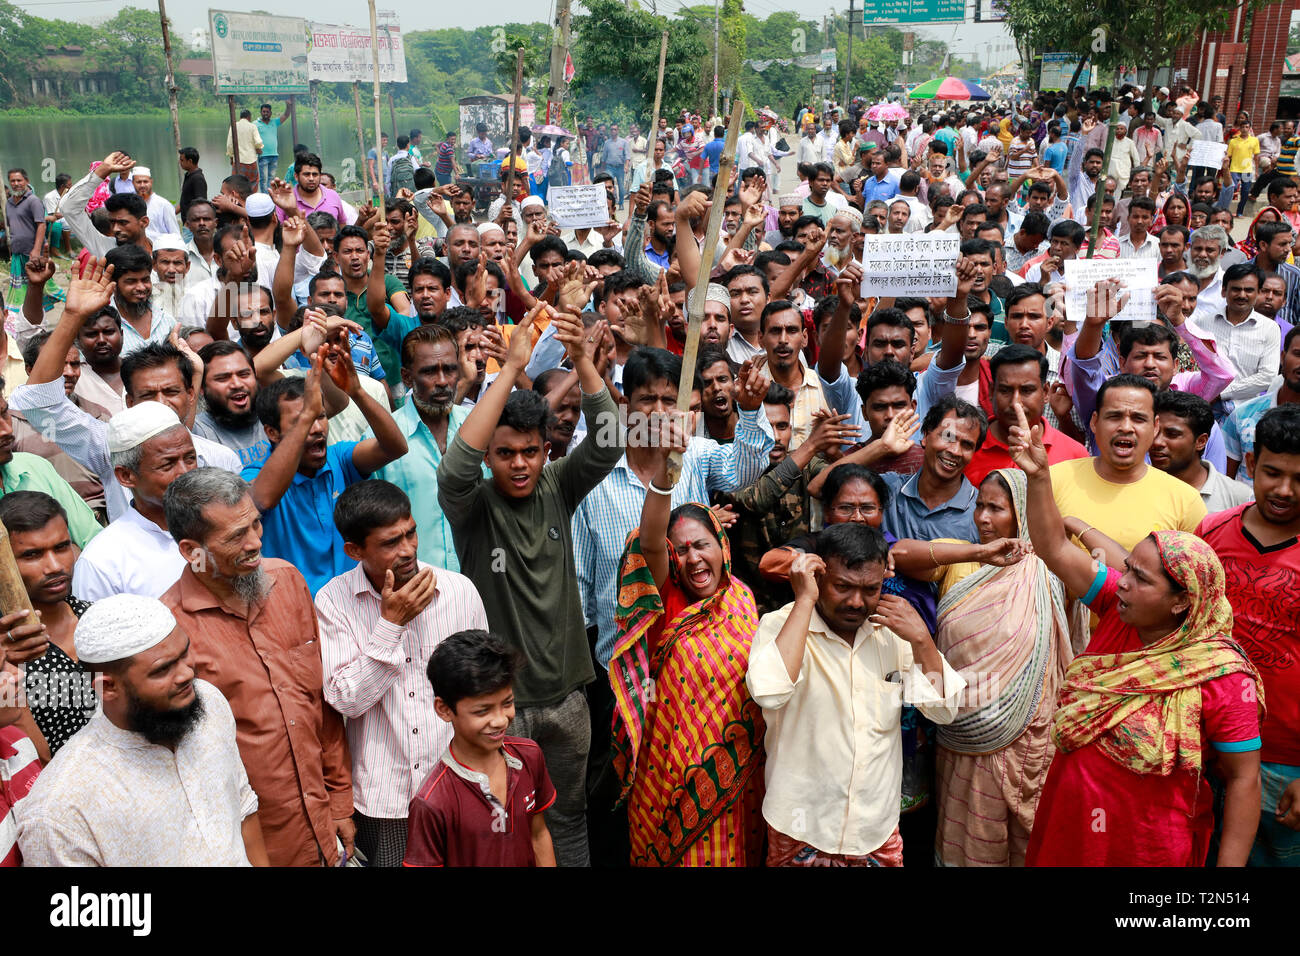 Dhaka, Bangladesh. 03rd Apr, 2019. Jute Mill workers in Damra blockade the staff quarter area on the Dhaka- Sylhet highway as their 72-hour strike began 02 April 2019, Dhaka, Bangladesh. Credit: SK Hasan Ali/Alamy Live News - Stock Image